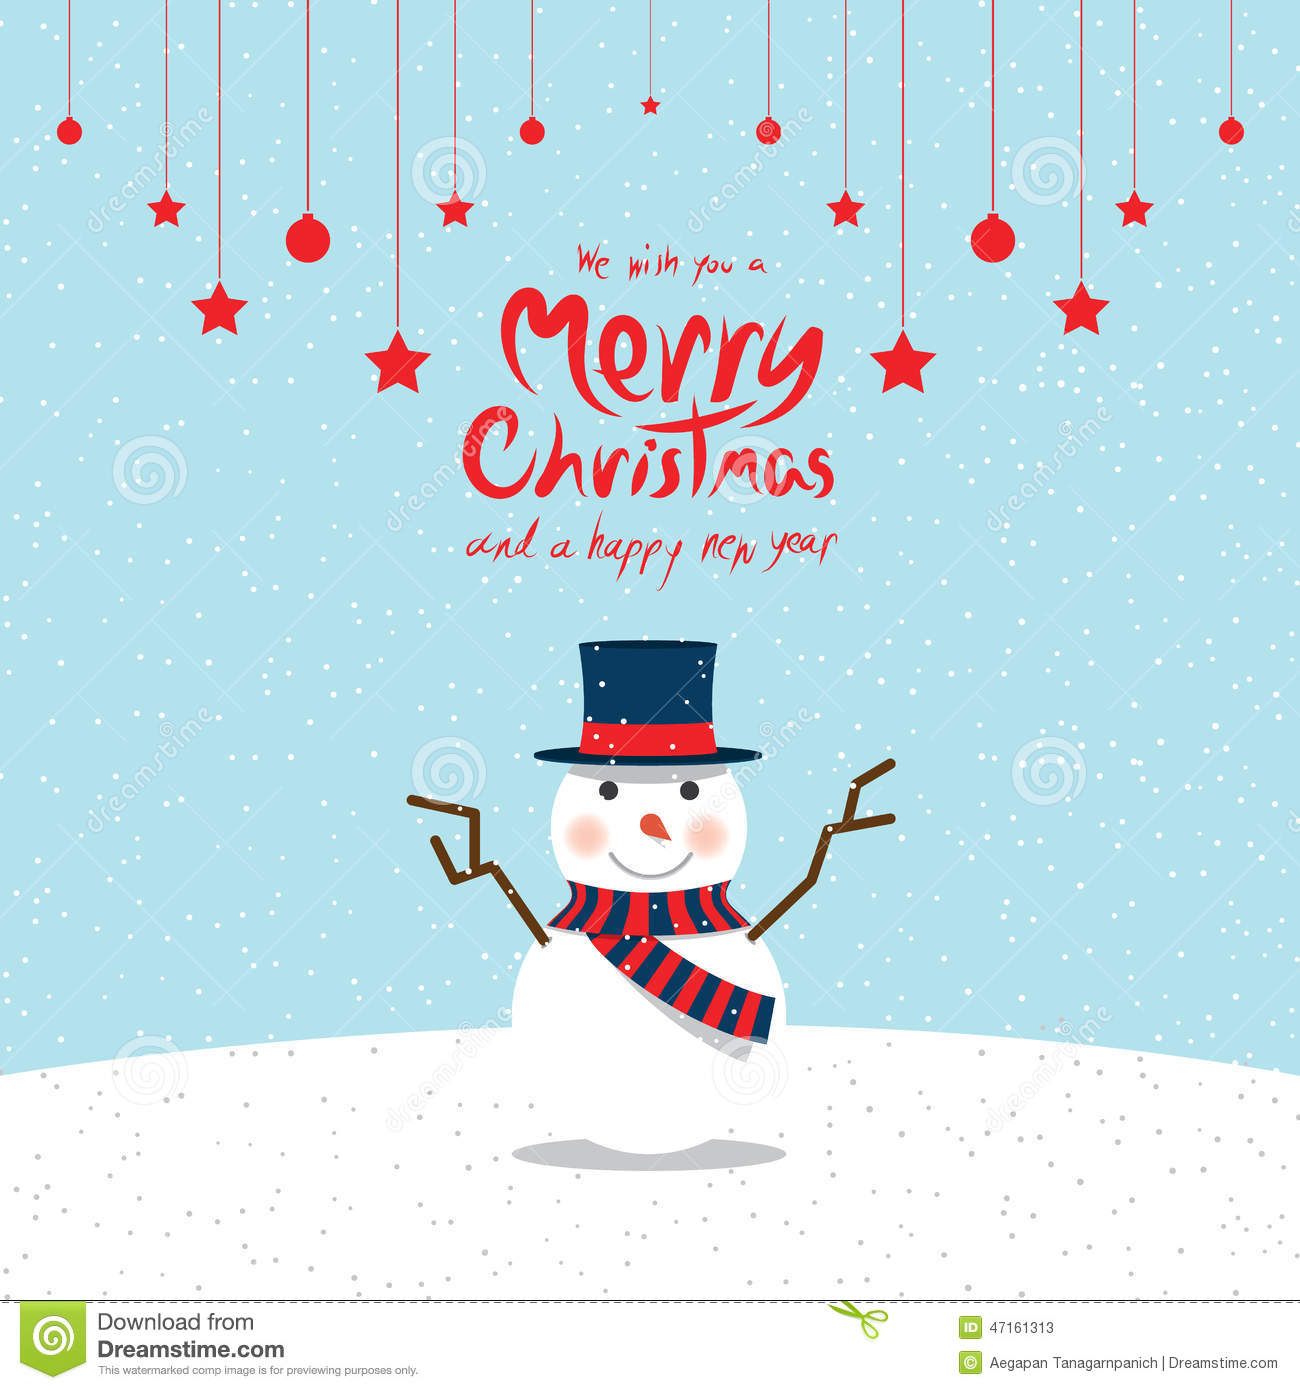 Snowman Christmas Cards Stock Vector Illustration Of